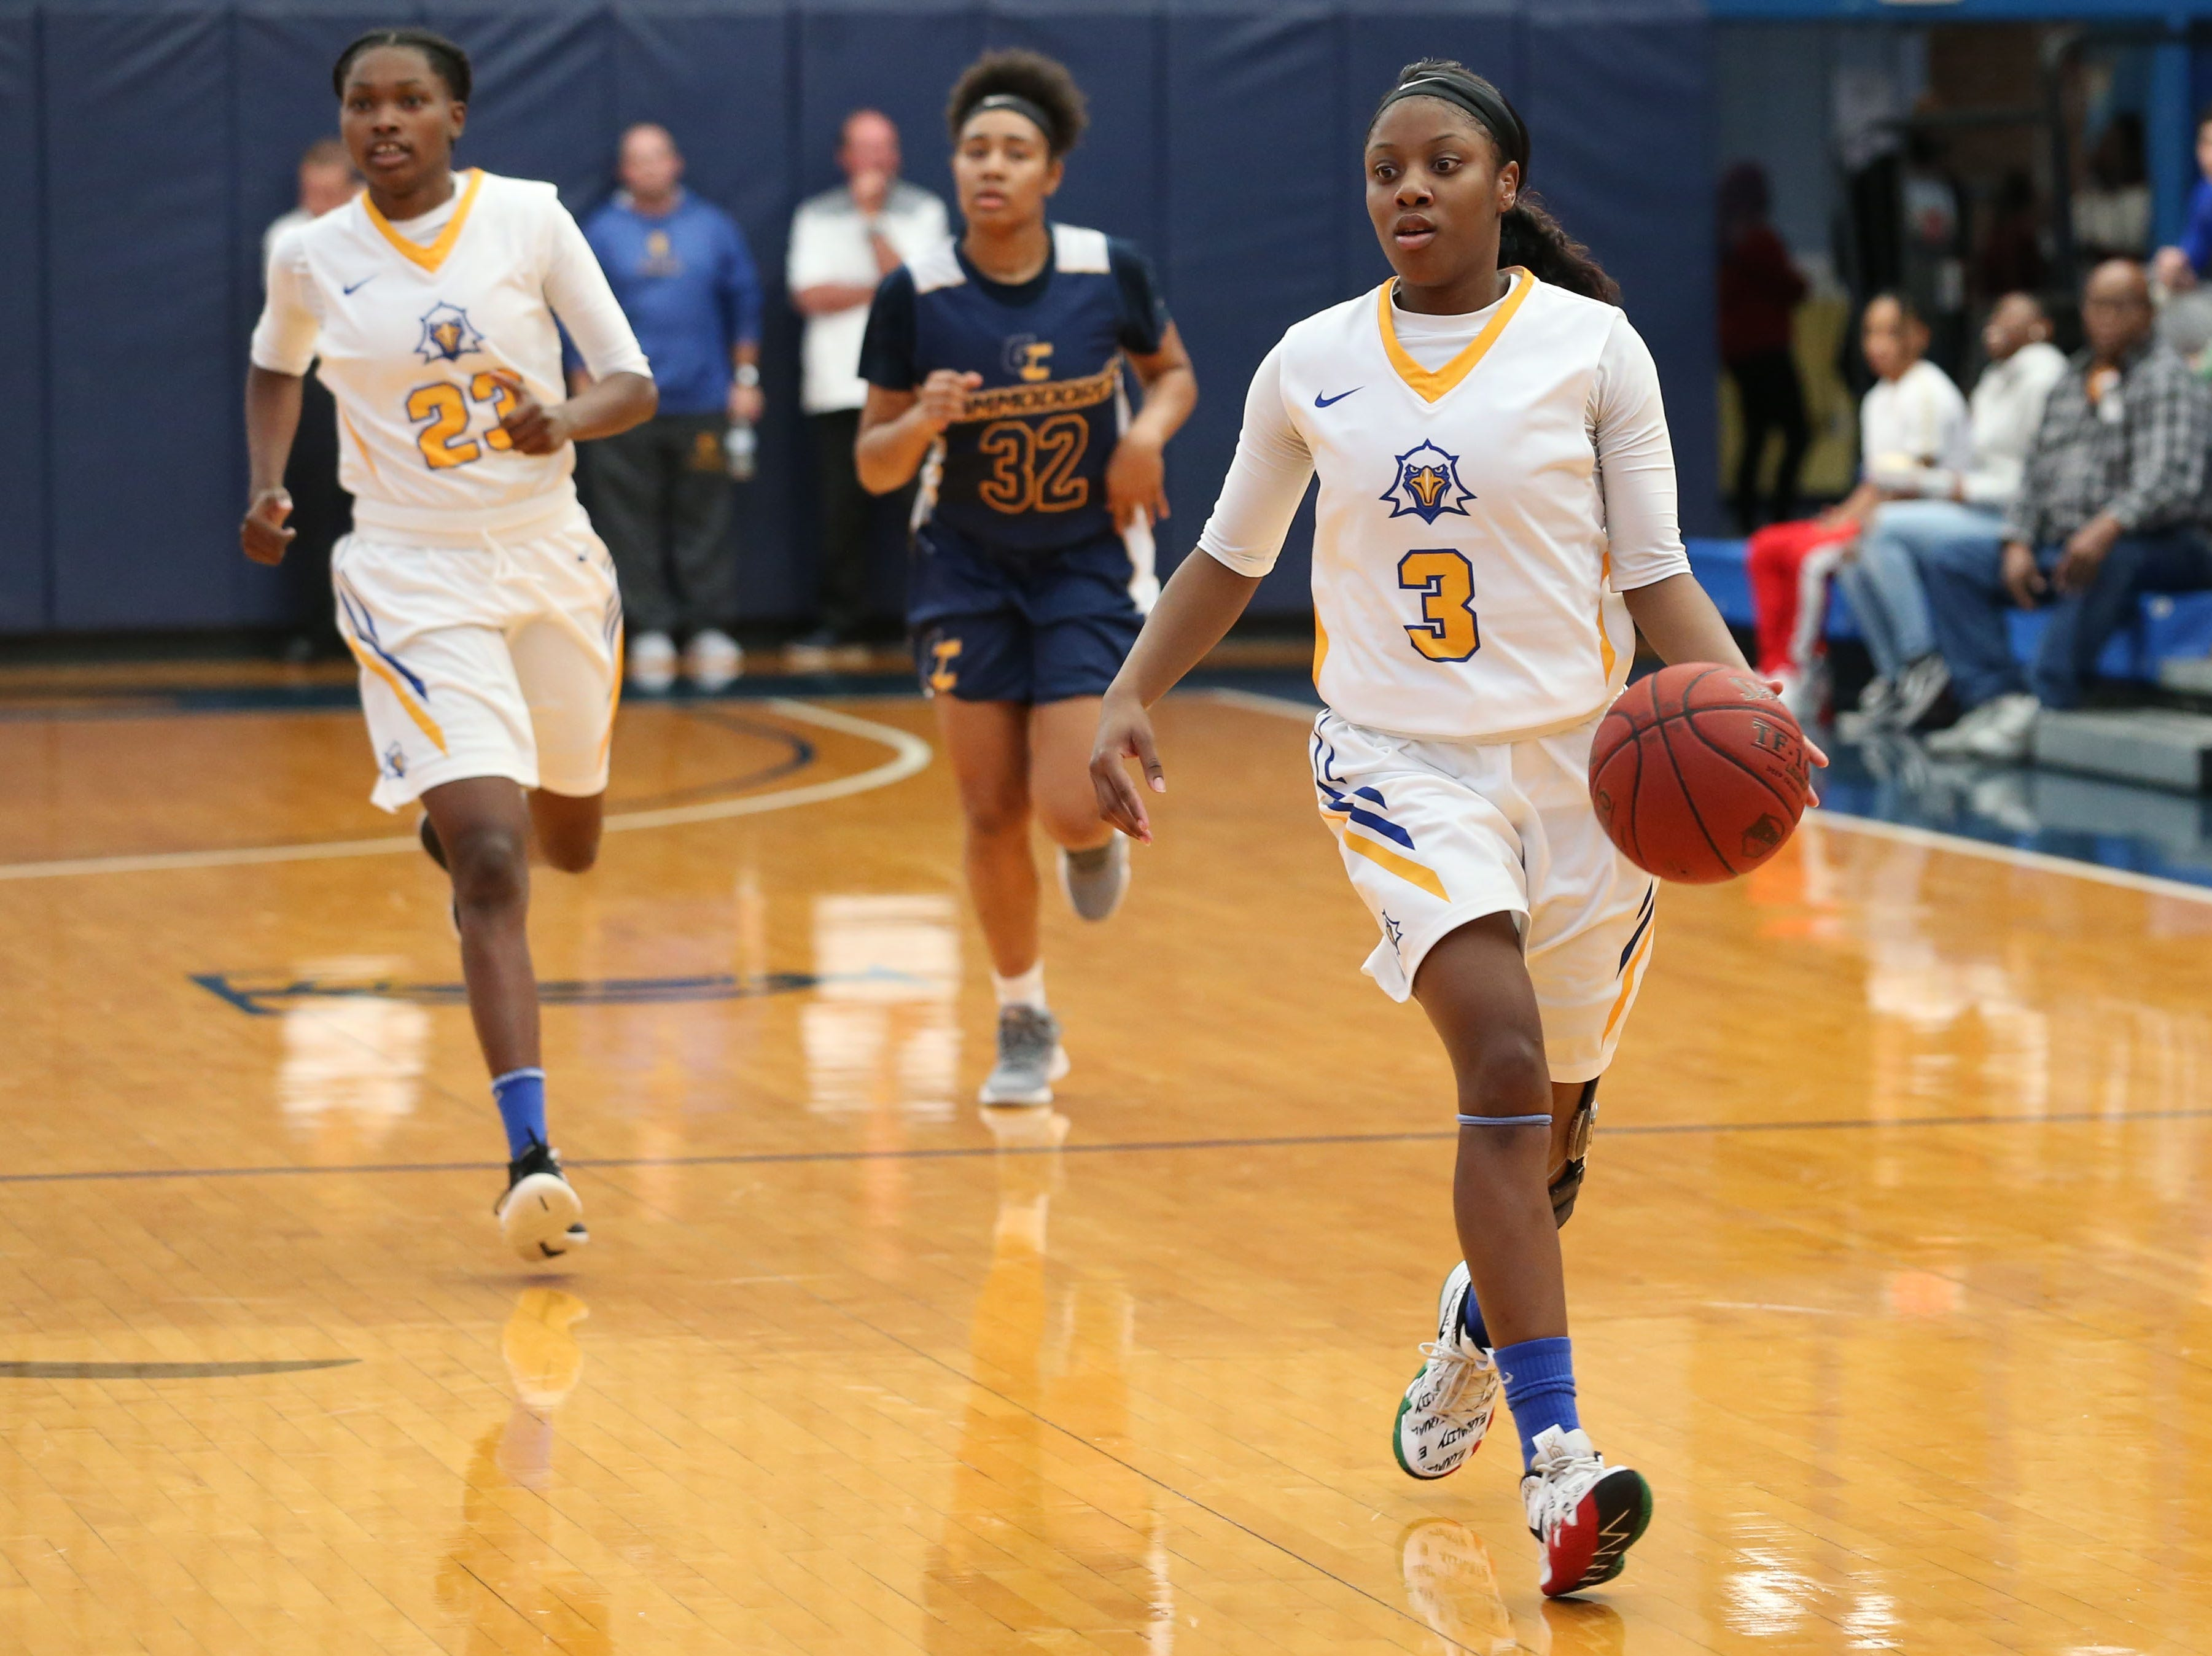 Tallahassee Community College Eagles guard Aliyah Lawson (3) drives the ball down the court without a defender close to stop her. The Tallahassee Community College Eagles host the Gulf Coast State College Commodores in a conference match-up in the Eagledome, Saturday, Jan. 5, 2019.